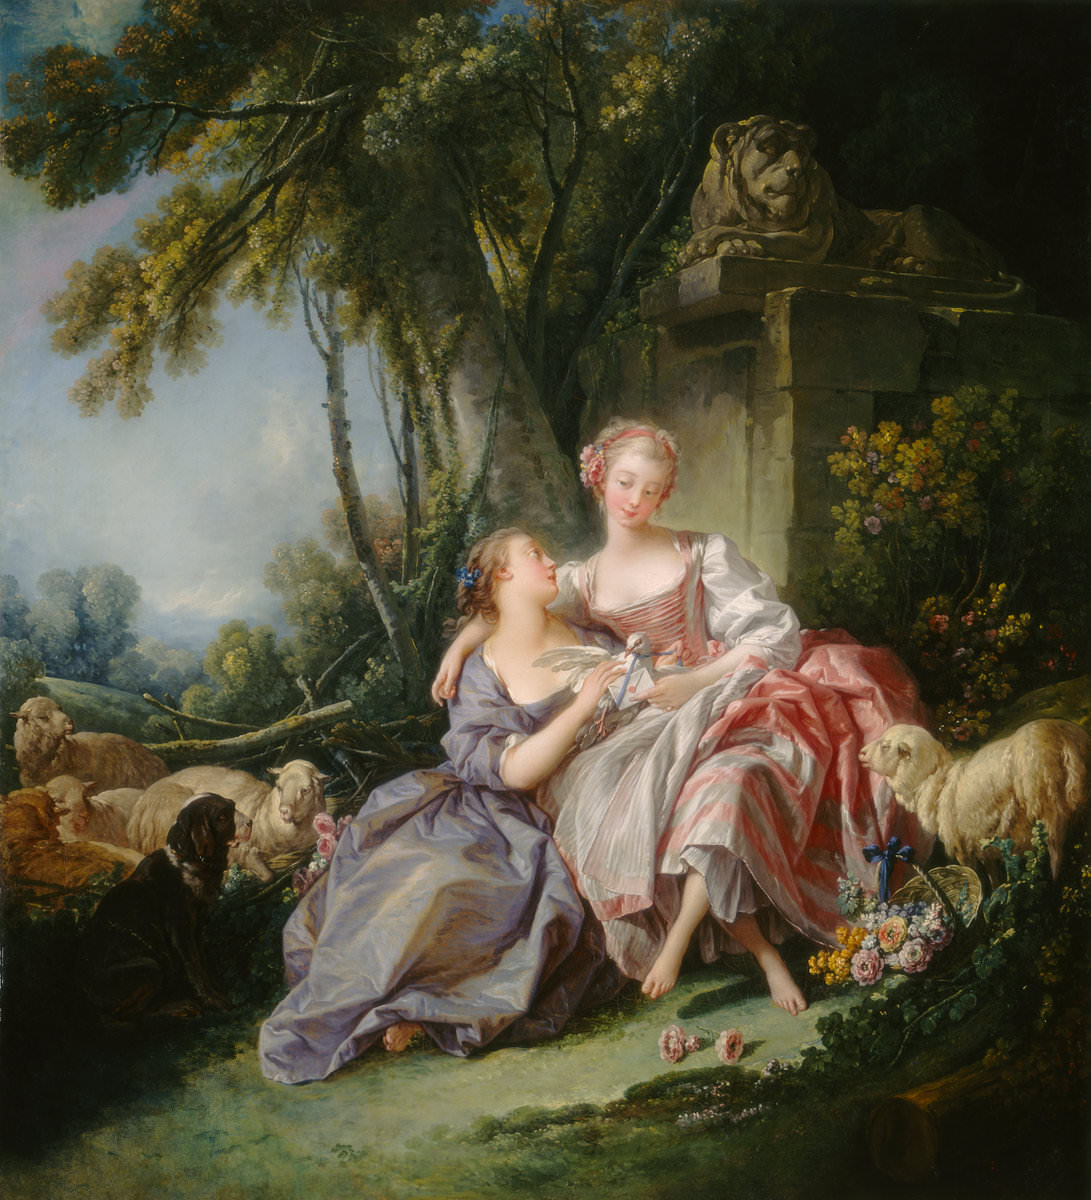 Fig. 8 – A Carta de Amor, François Boucher 1703 – 1770, datada 1750, óleo sobre tela, pintura, National Gallery of Art, Crédito Timken Collection.